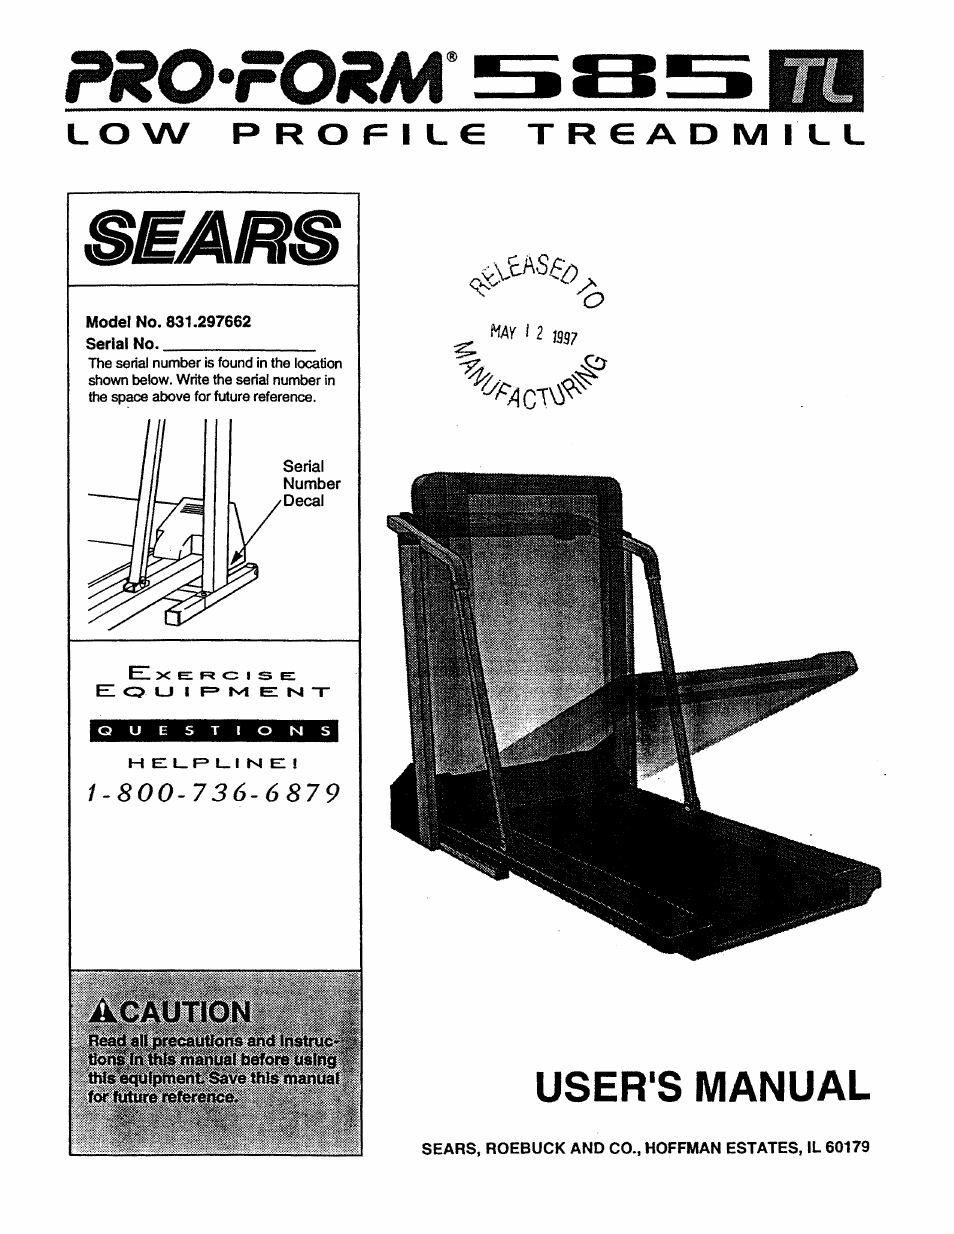 Sears PRO FORM 585 831 297662 User Manual | 19 pages